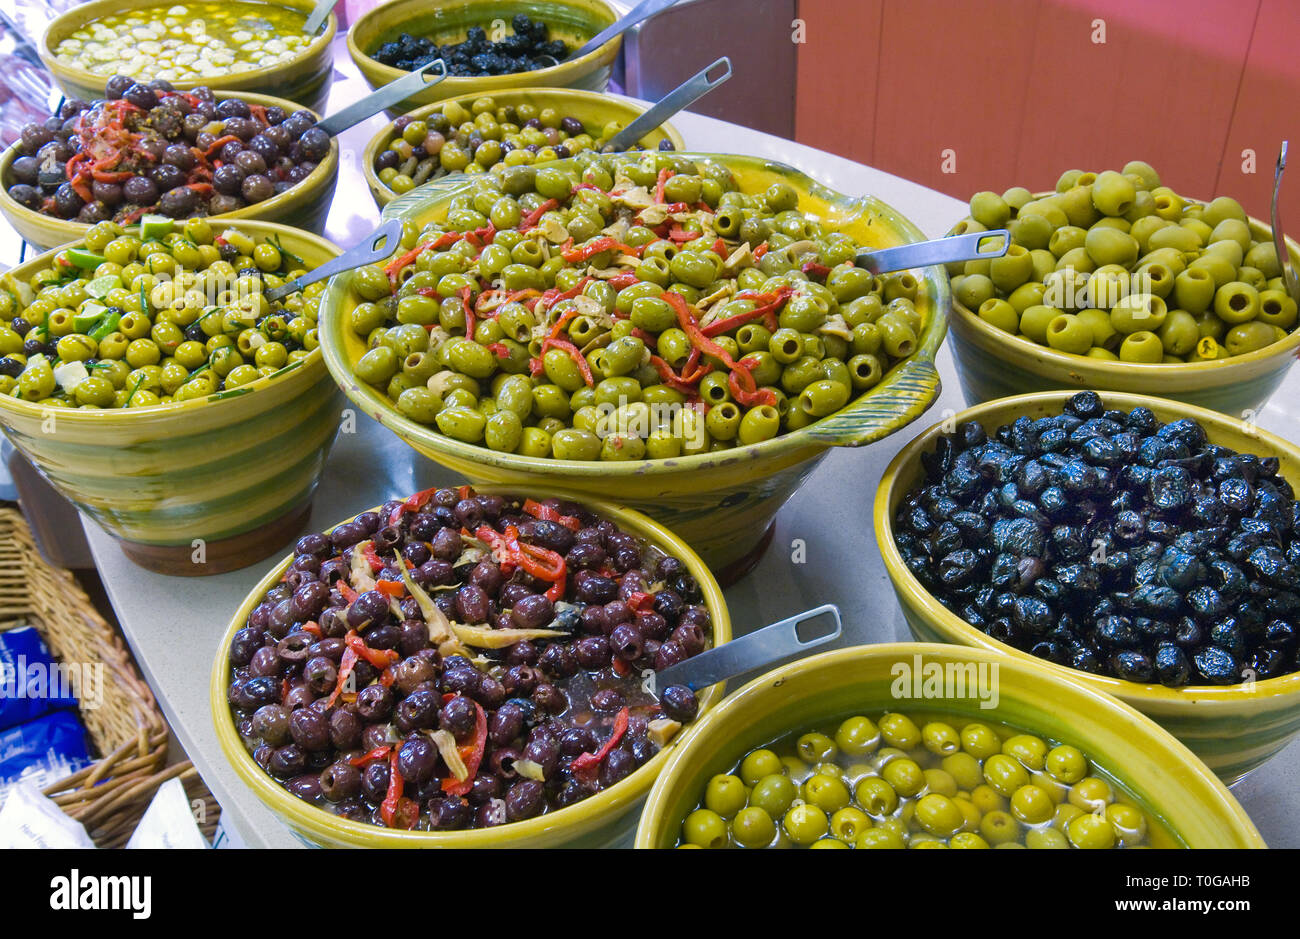 Lots of different types of olives for sale by weigh and displayed in